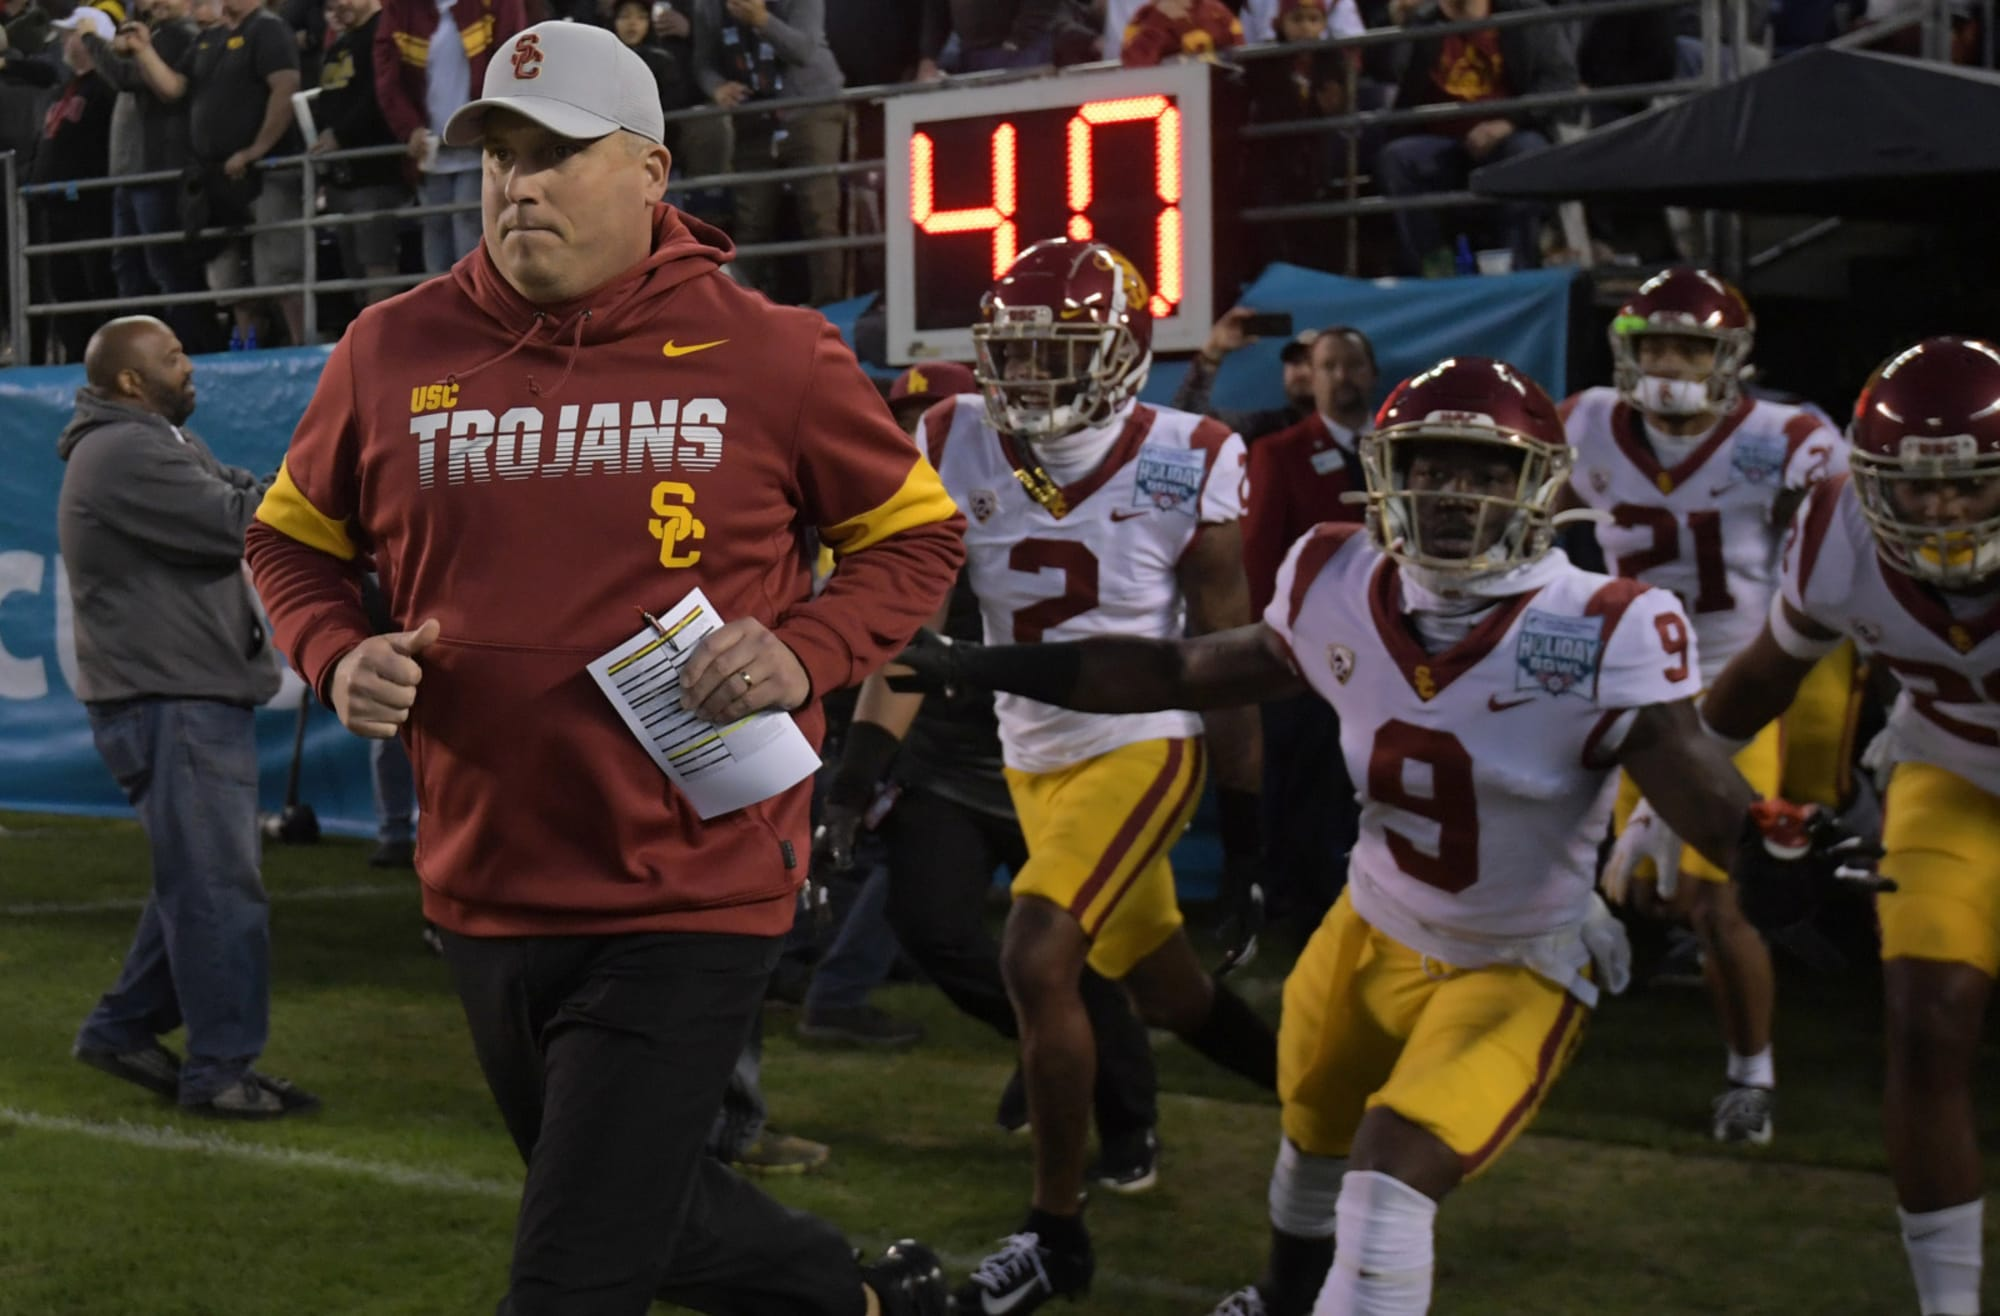 Usc Football Schedule For 2020 Revealed Have Road To Pac 12 Title Game